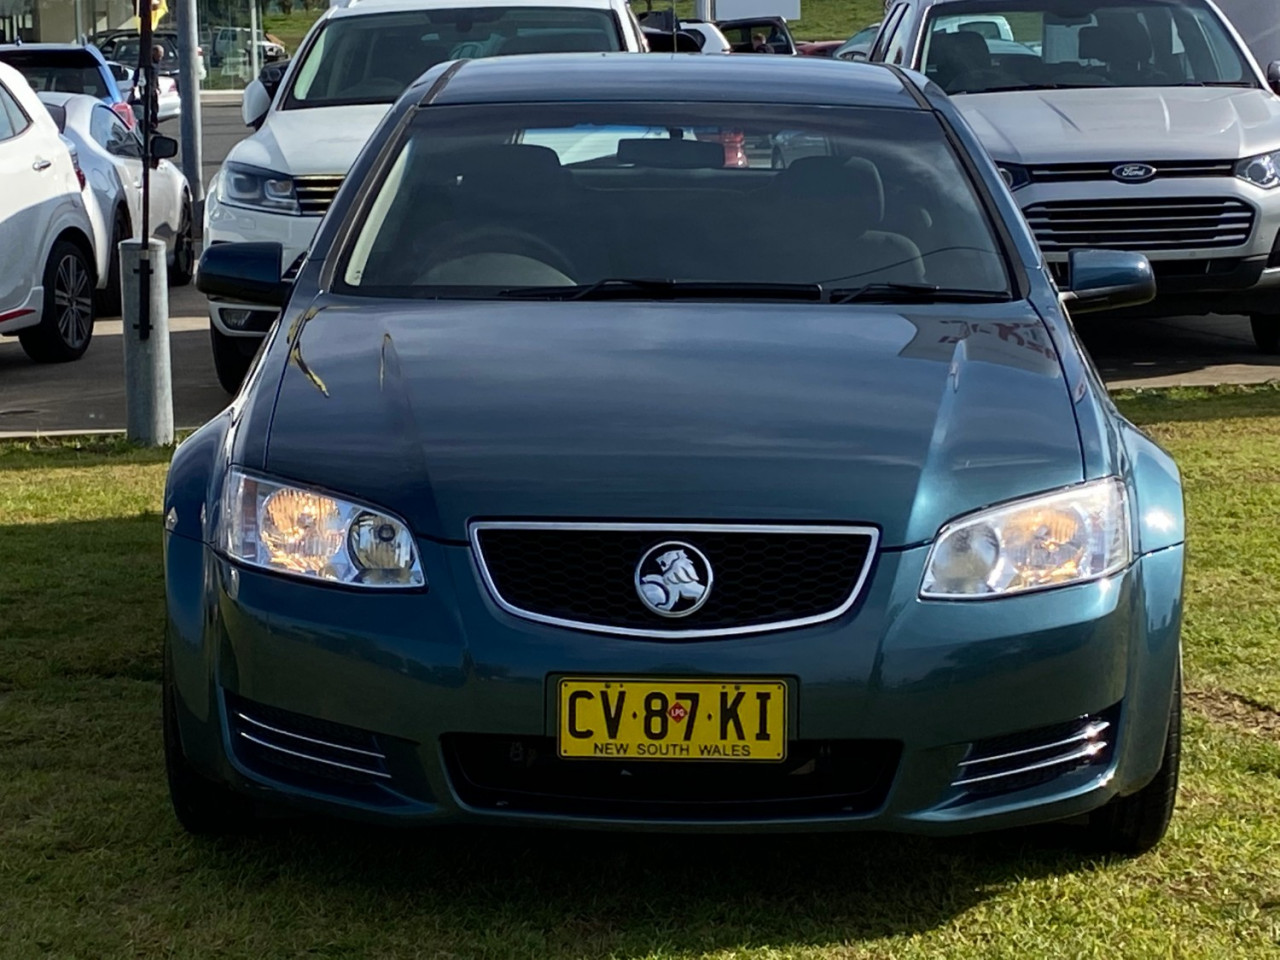 2012 Holden Commodore VE II MY12 SV6 Wagon